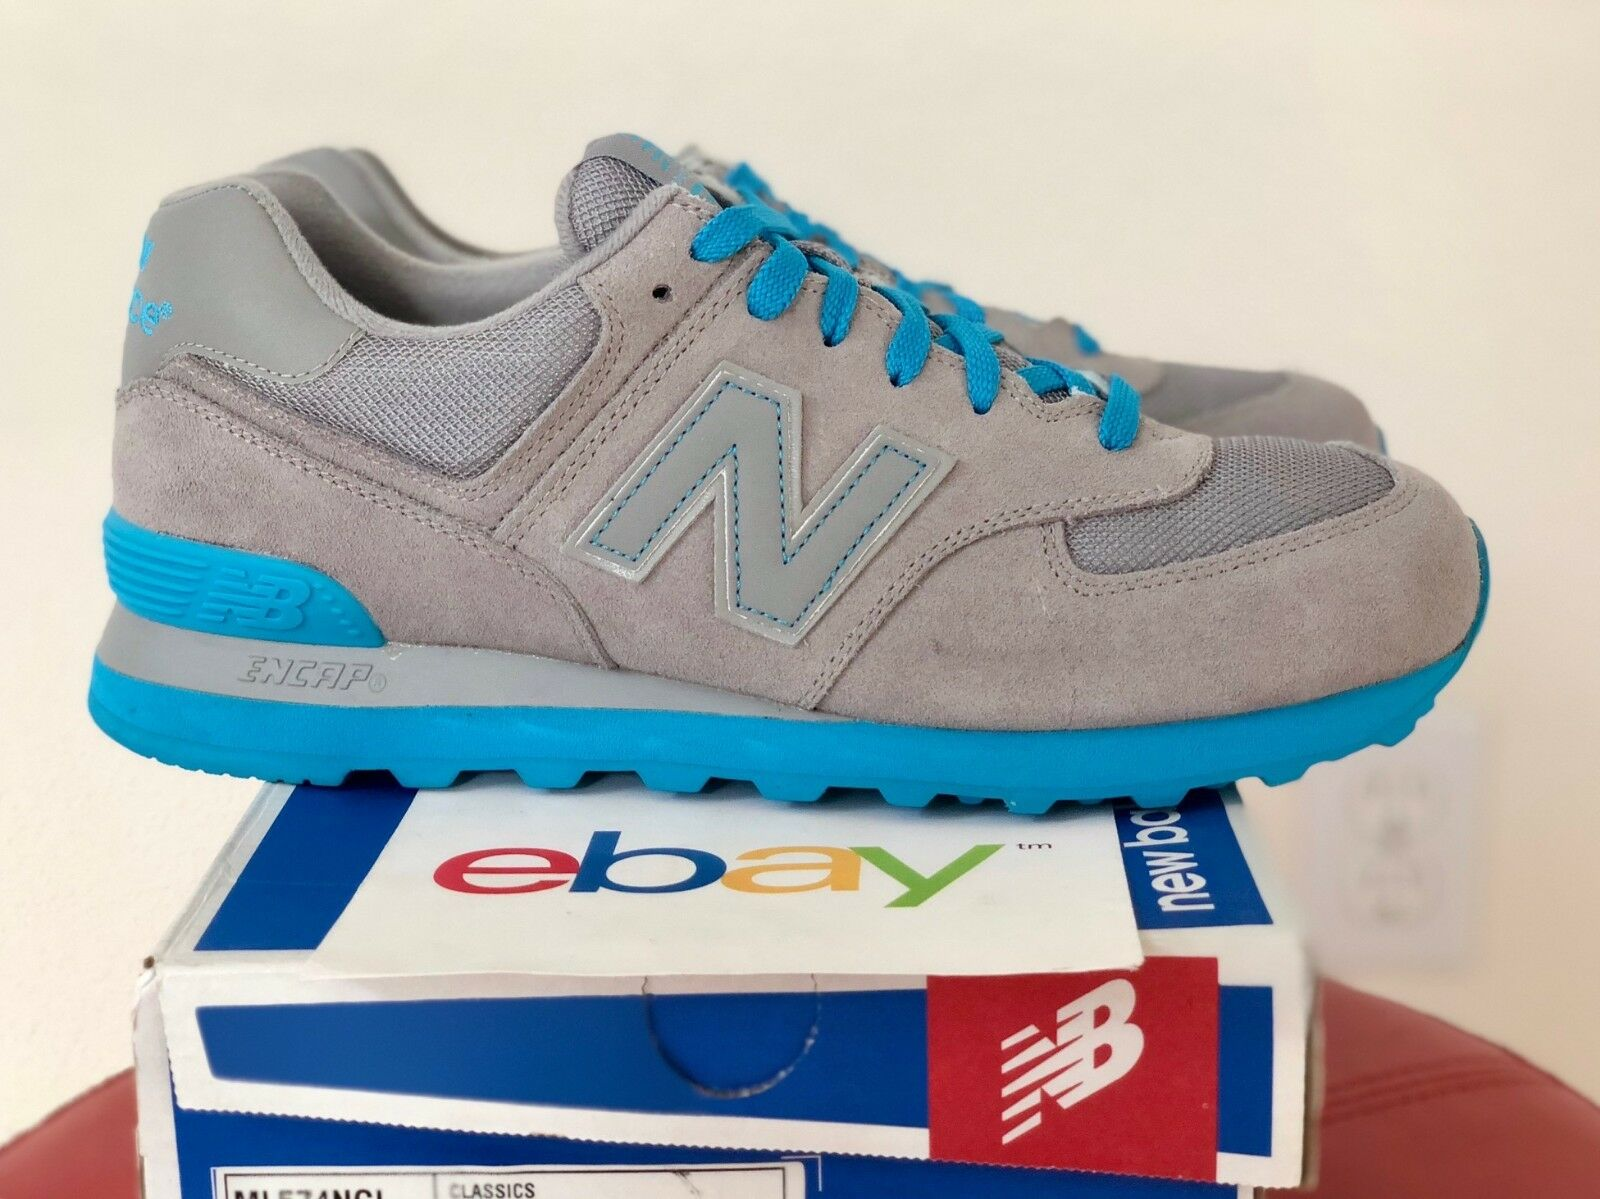 DS Mens New Balance 574 gris SUEDE Talla 9.5-10.5 light azul classics tradition D